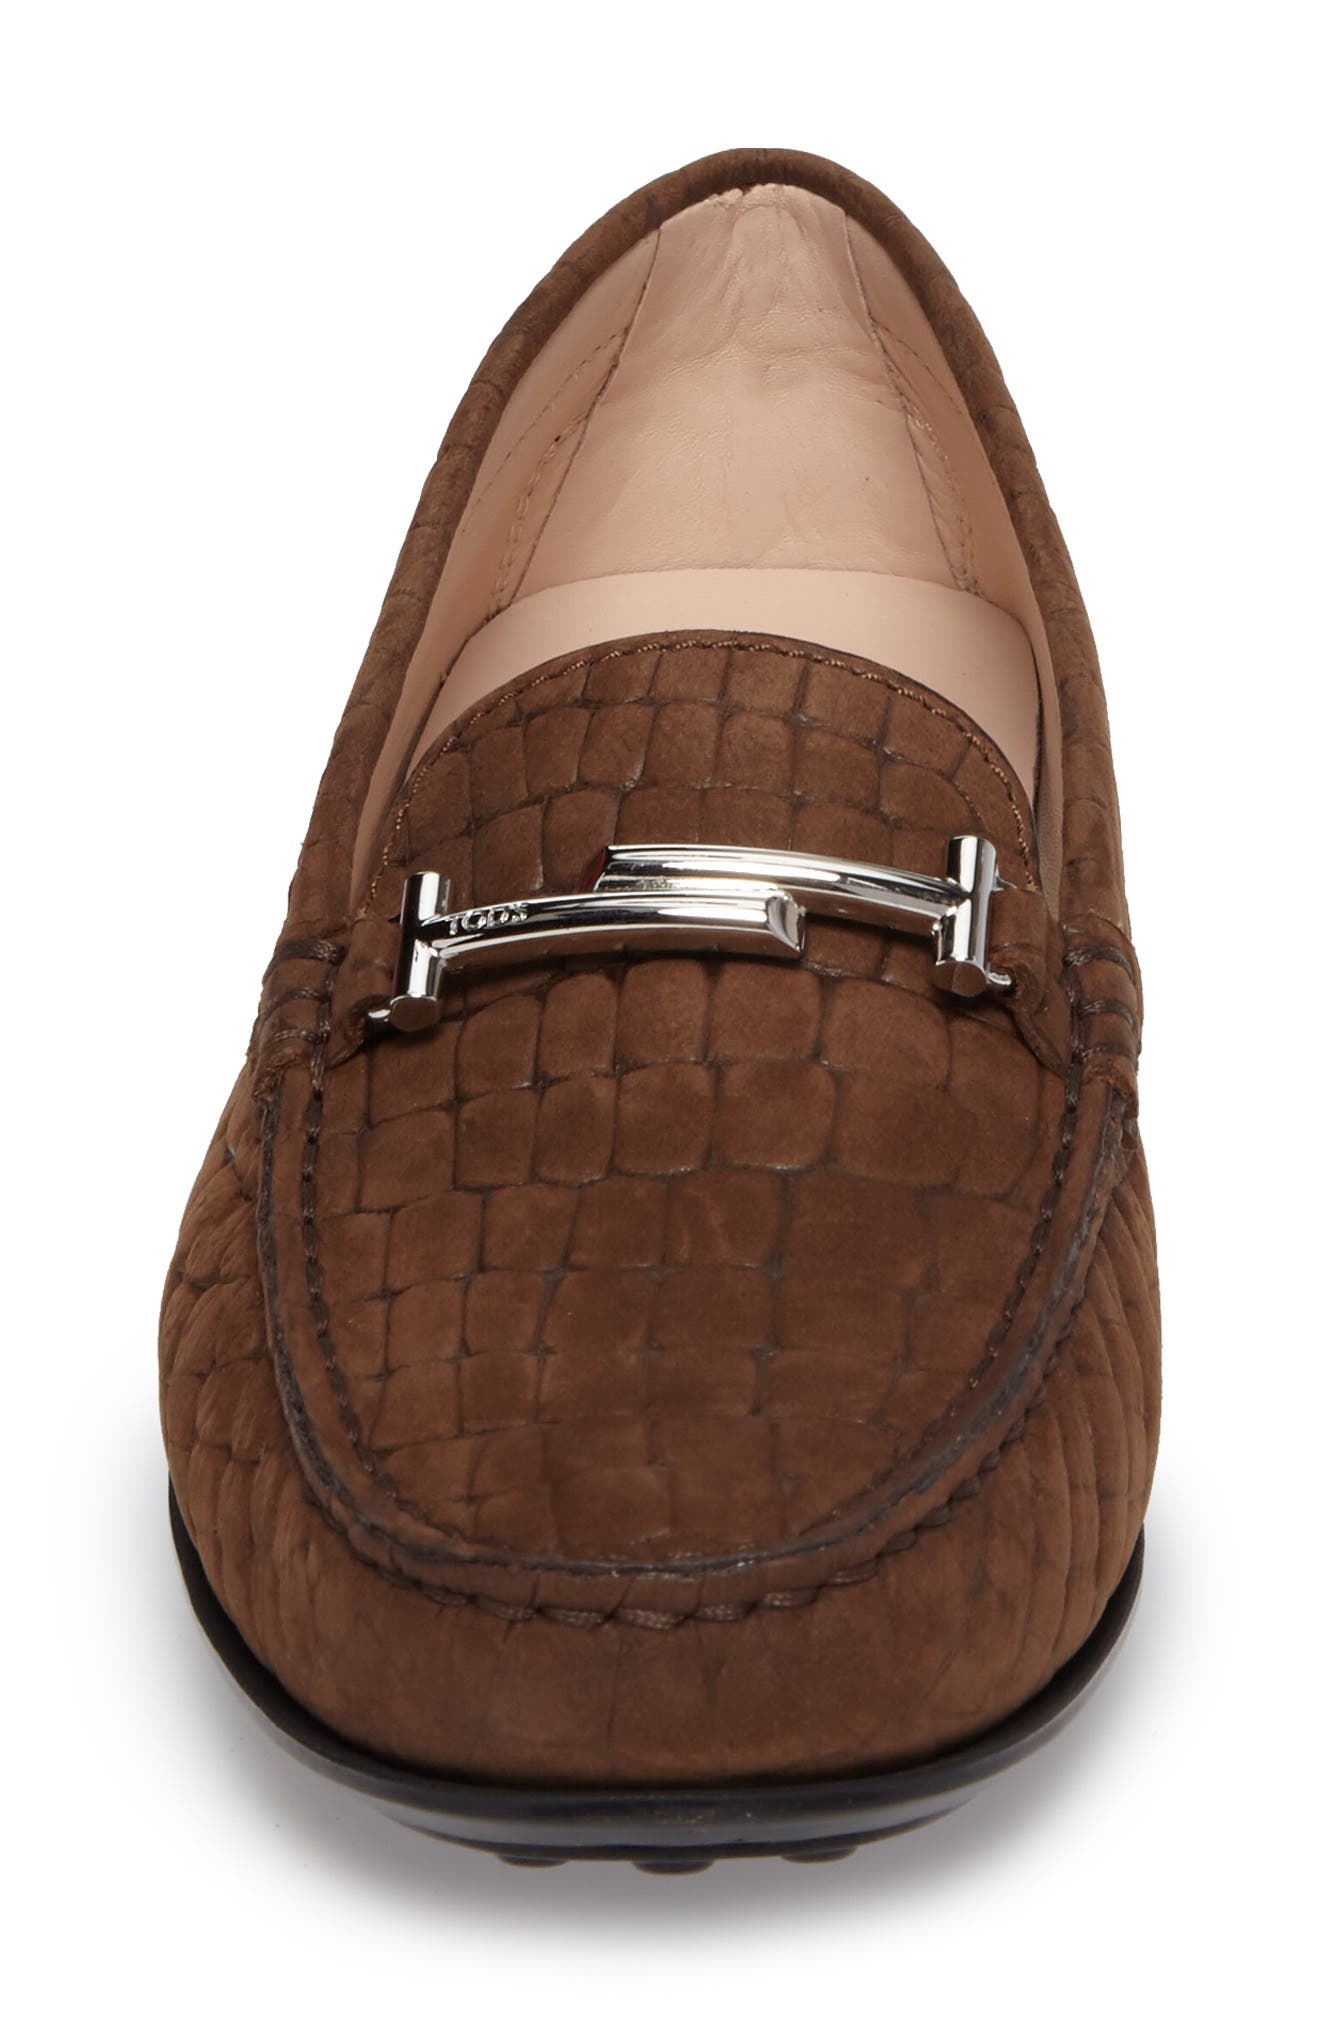 Tods Croc Embossed Double T Loafer,                             Alternate thumbnail 4, color,                             249